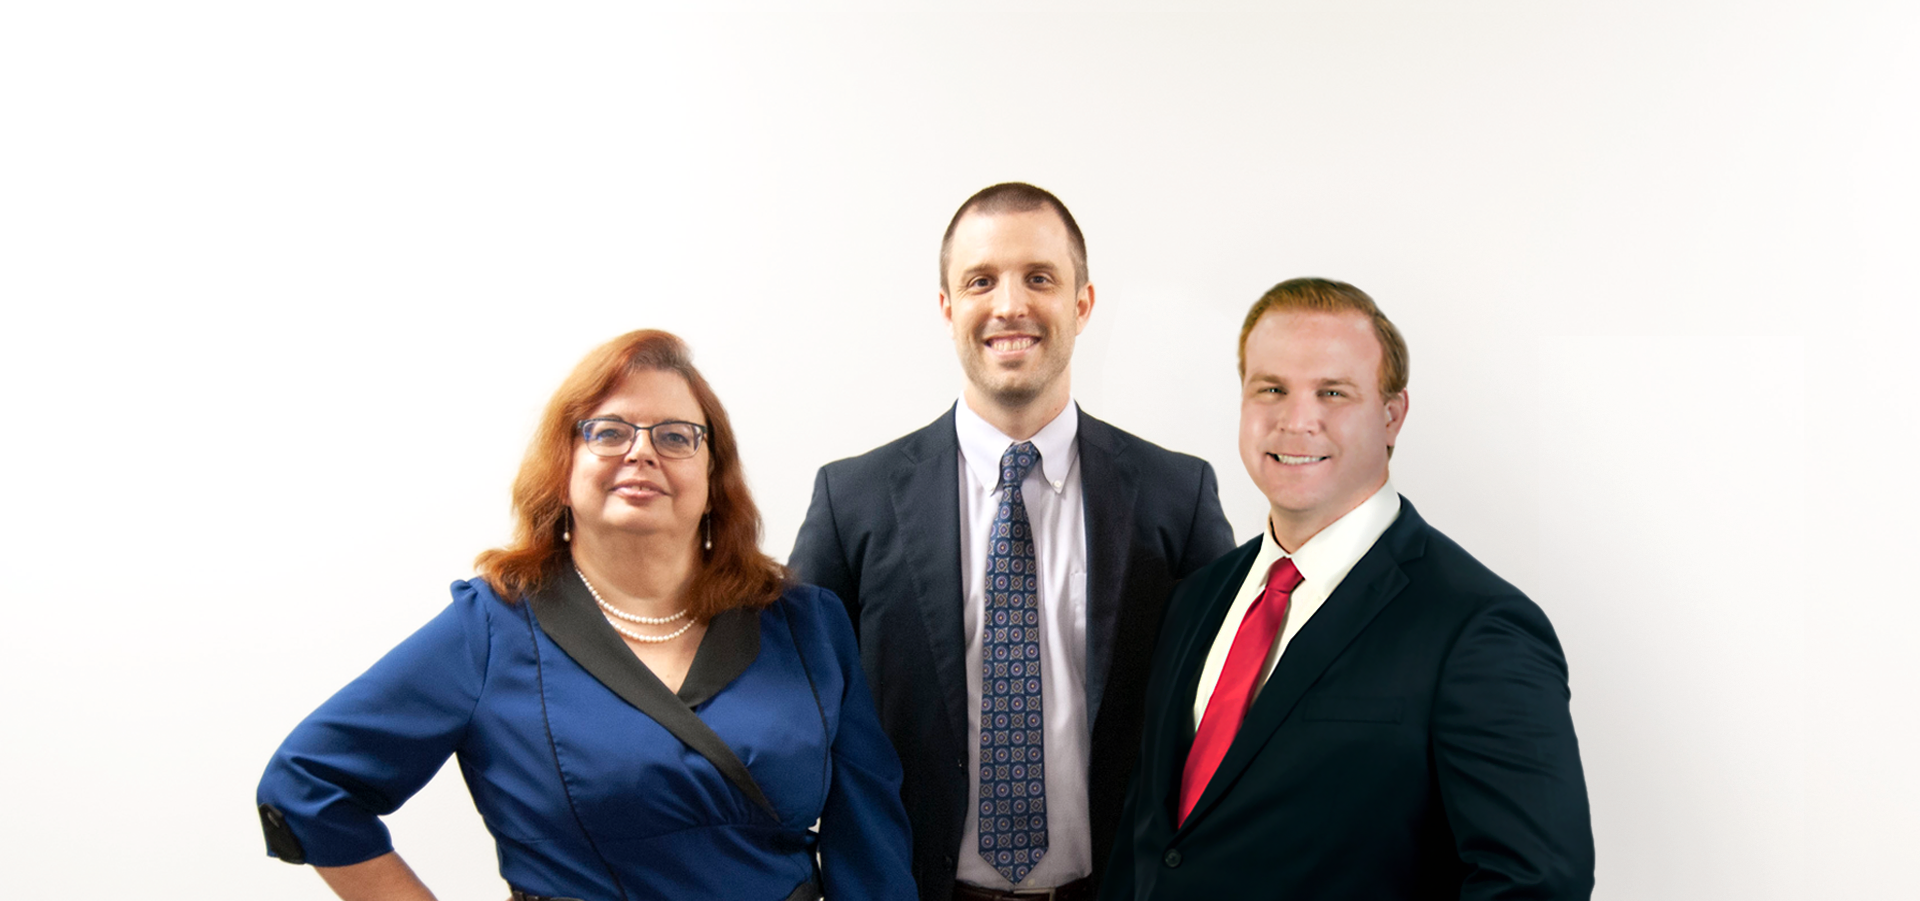 Divorce Attorneys in Chapel Hill, Pittsboro